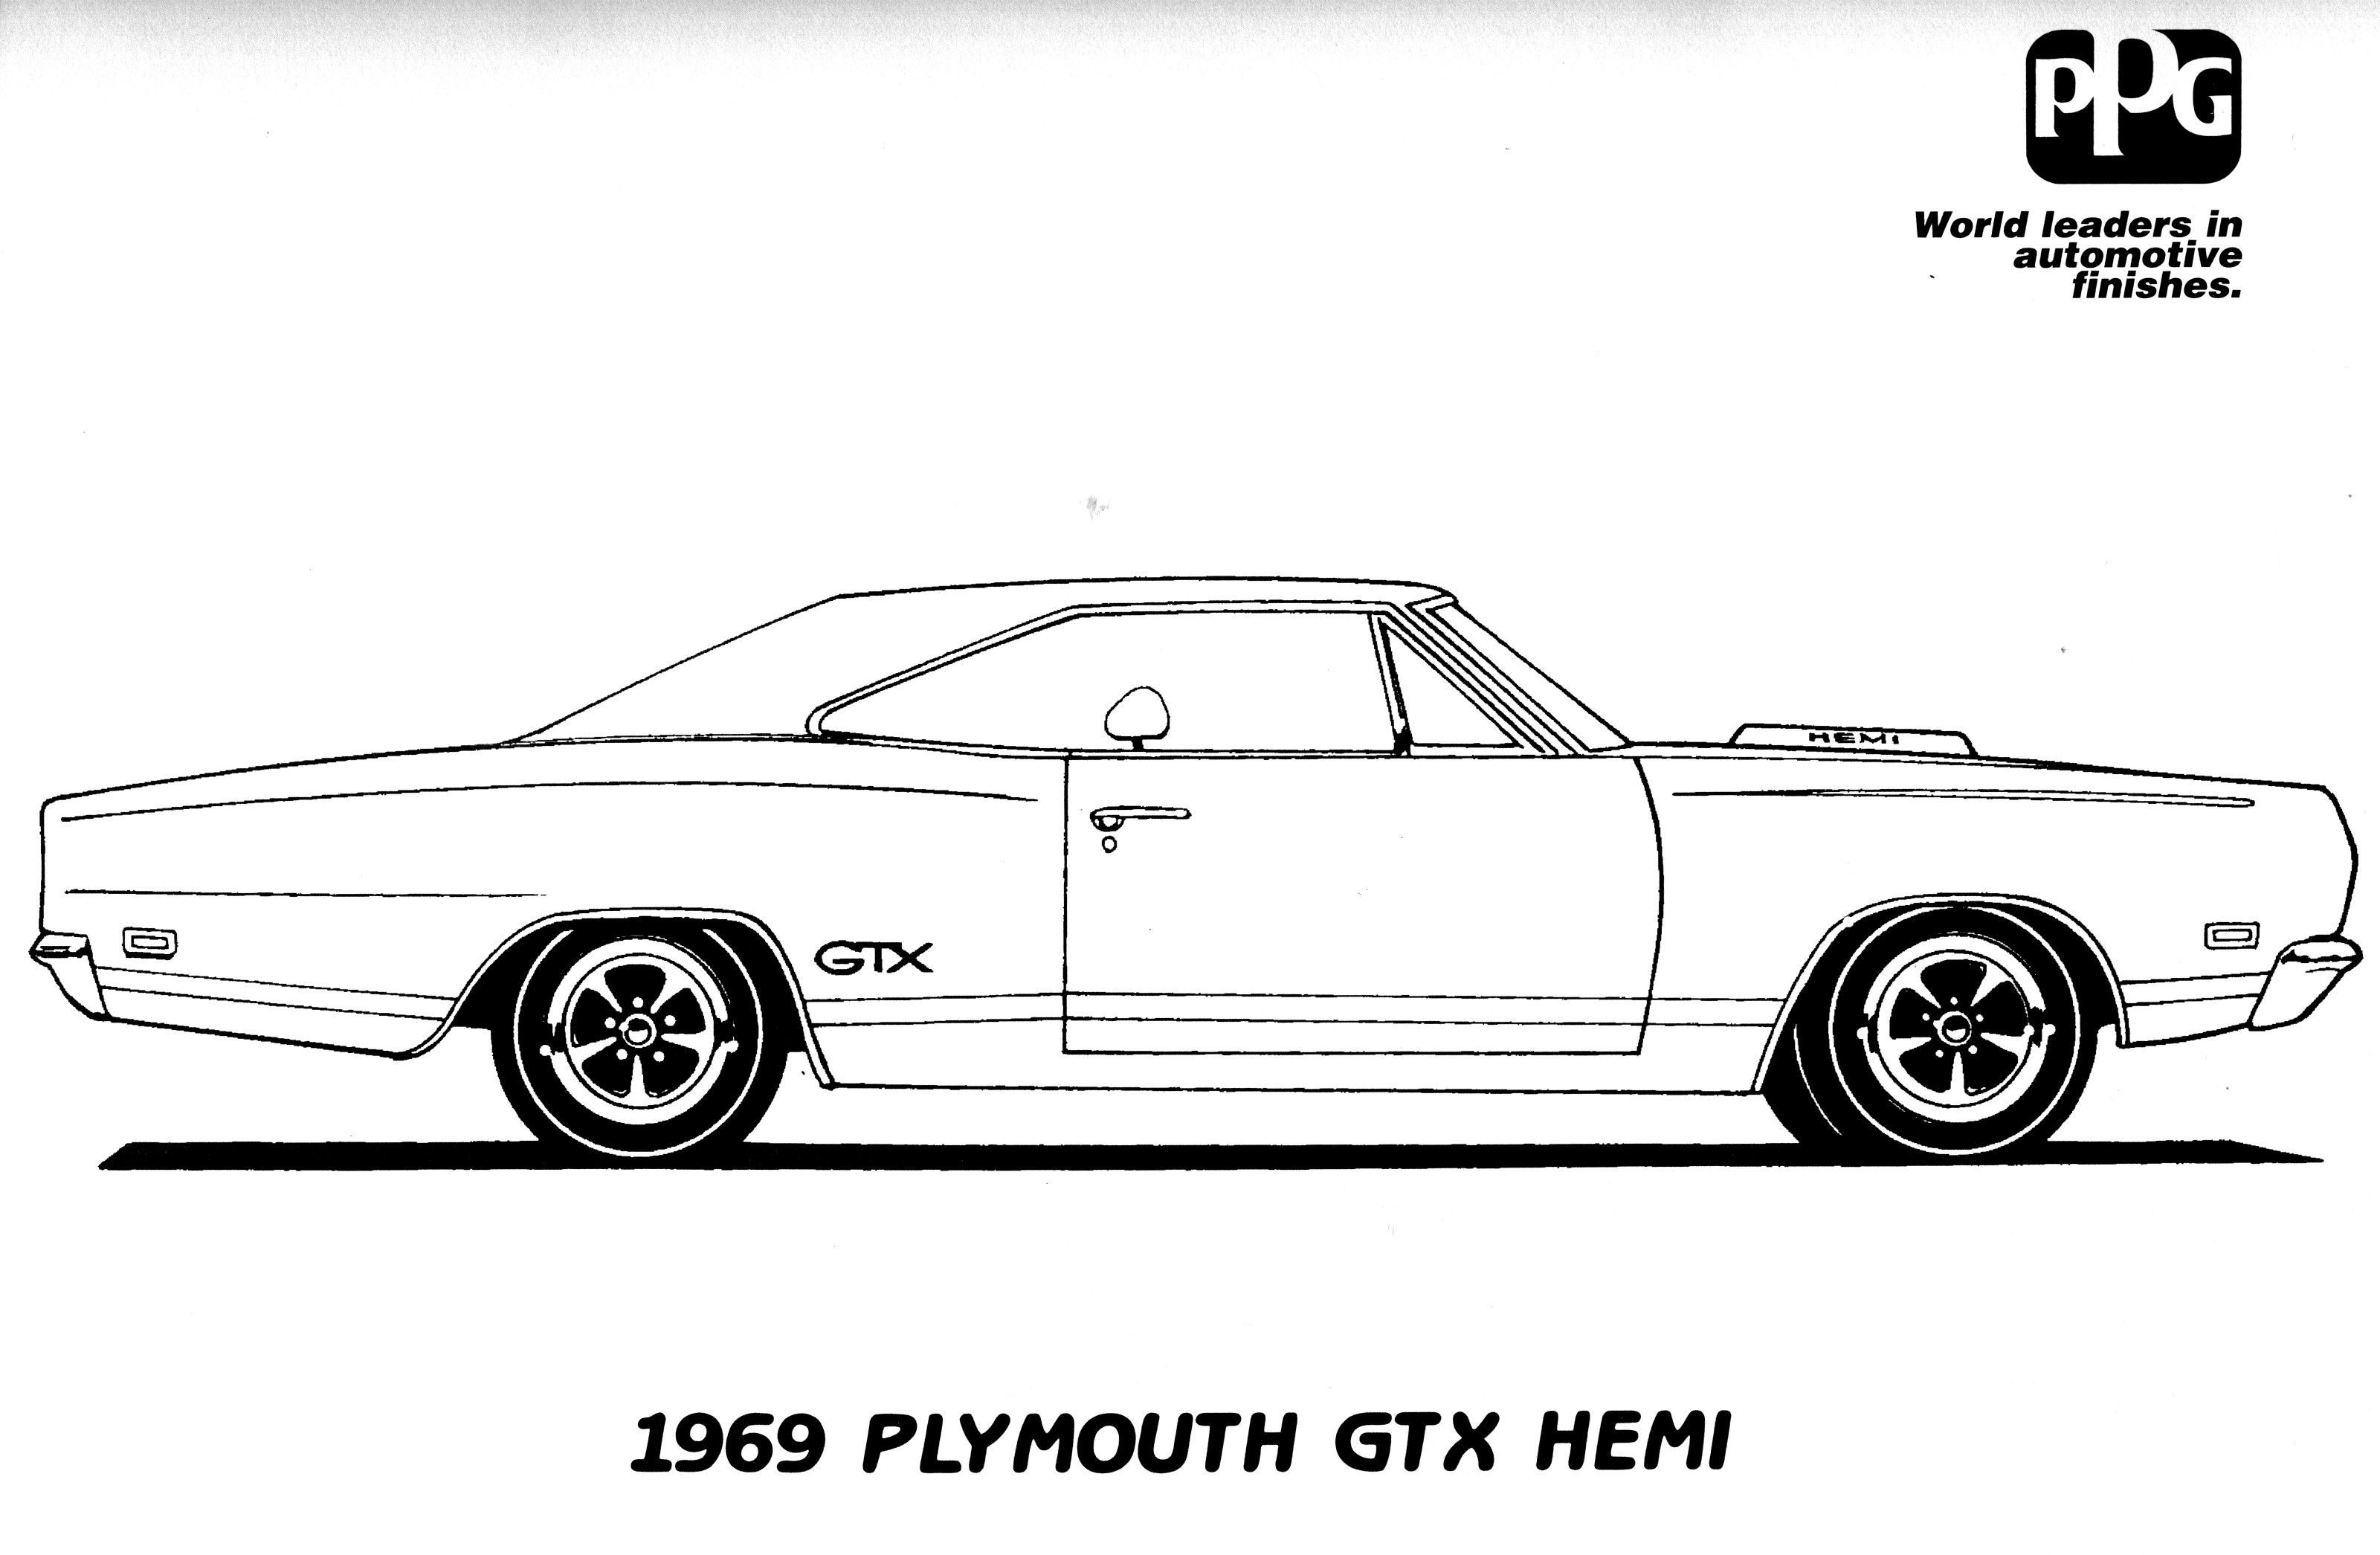 Muscle Car Coloring Pages To Download And Print For Free Cars Coloring Pages Dodge Charger Truck Coloring Pages